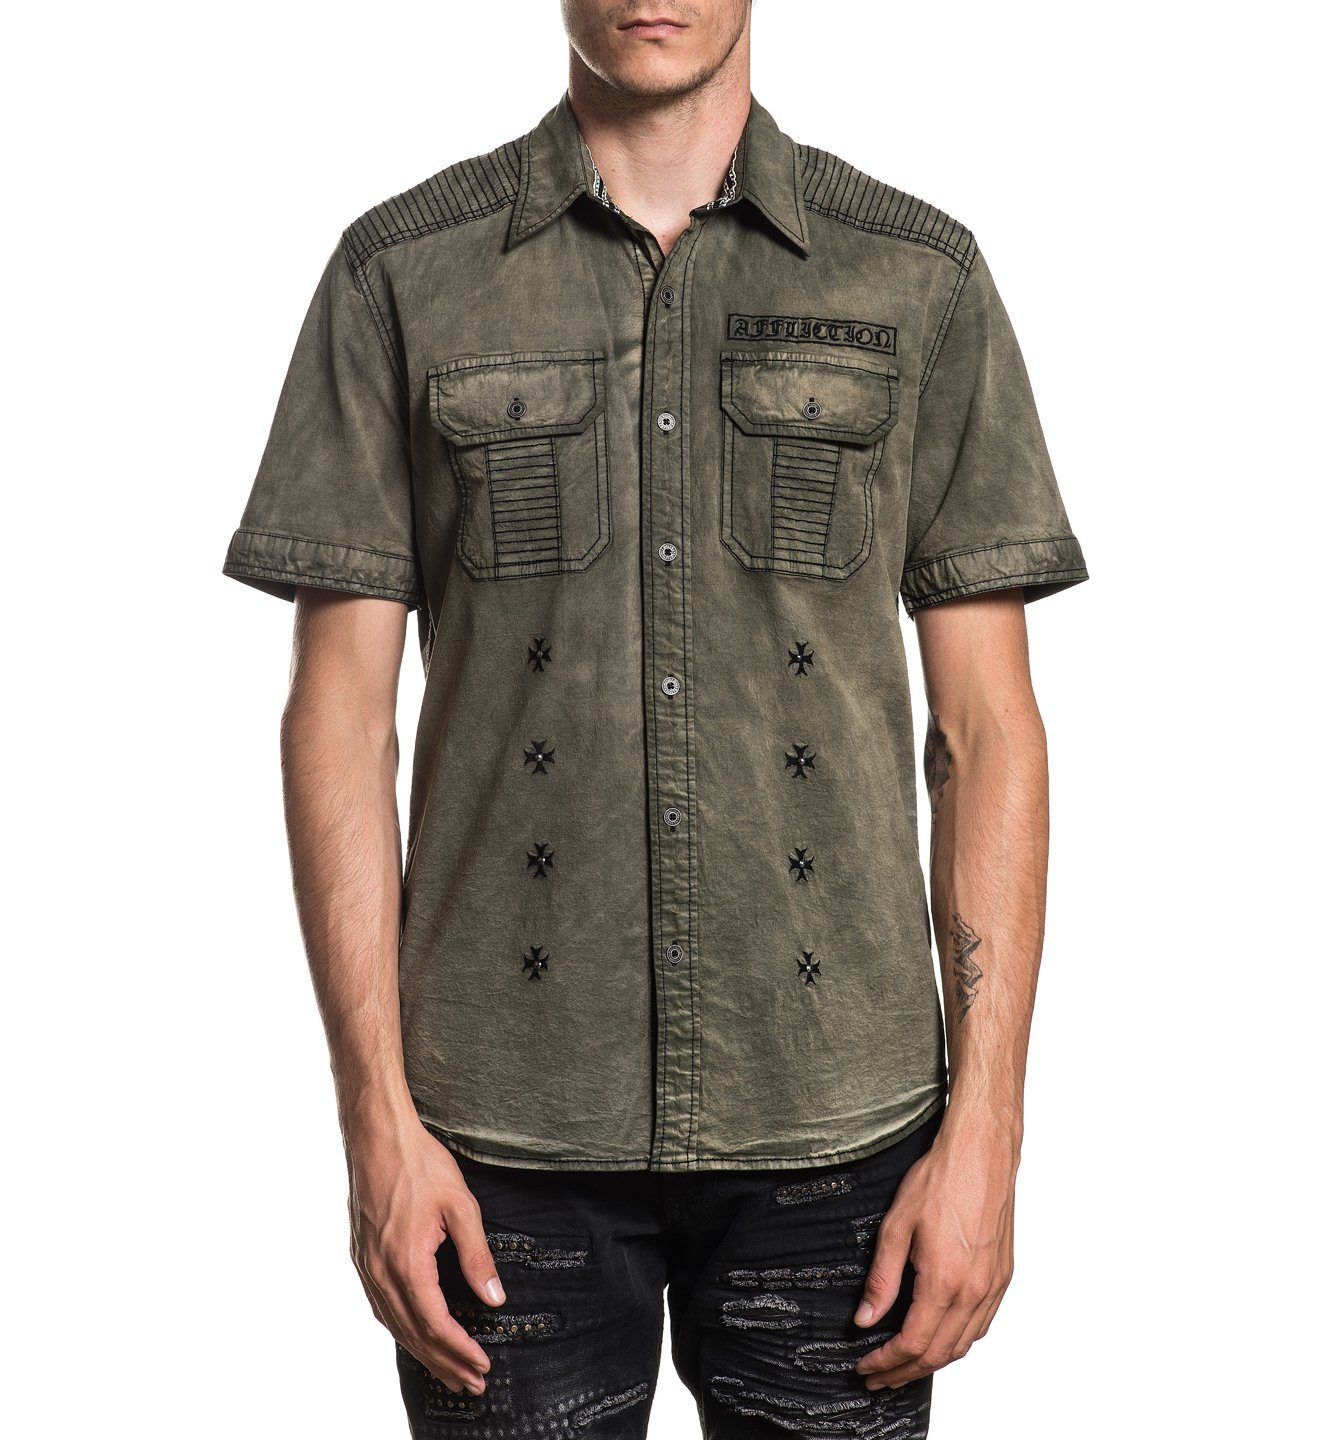 Mens Button Down Tops - Reprieve